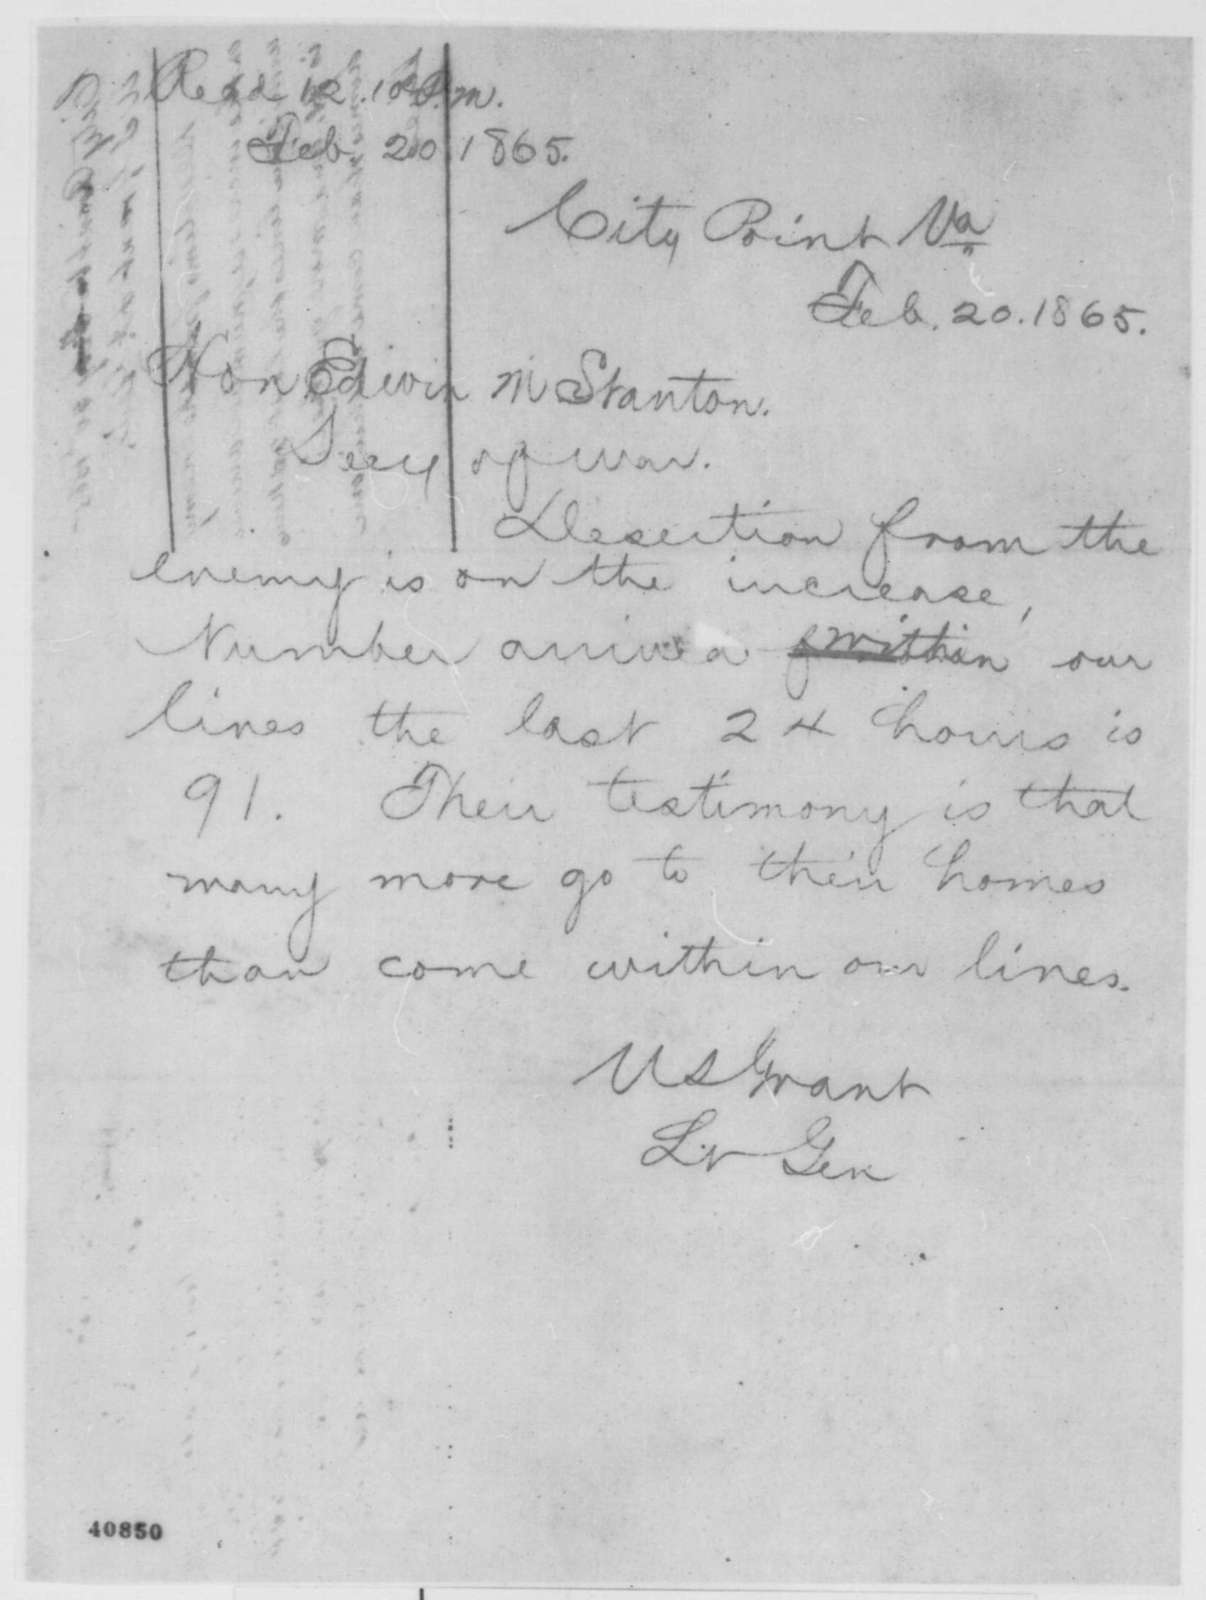 Ulysses S. Grant to Edwin M. Stanton, Monday, February 20, 1865  (Telegram concerning desertion in Confederate Army)